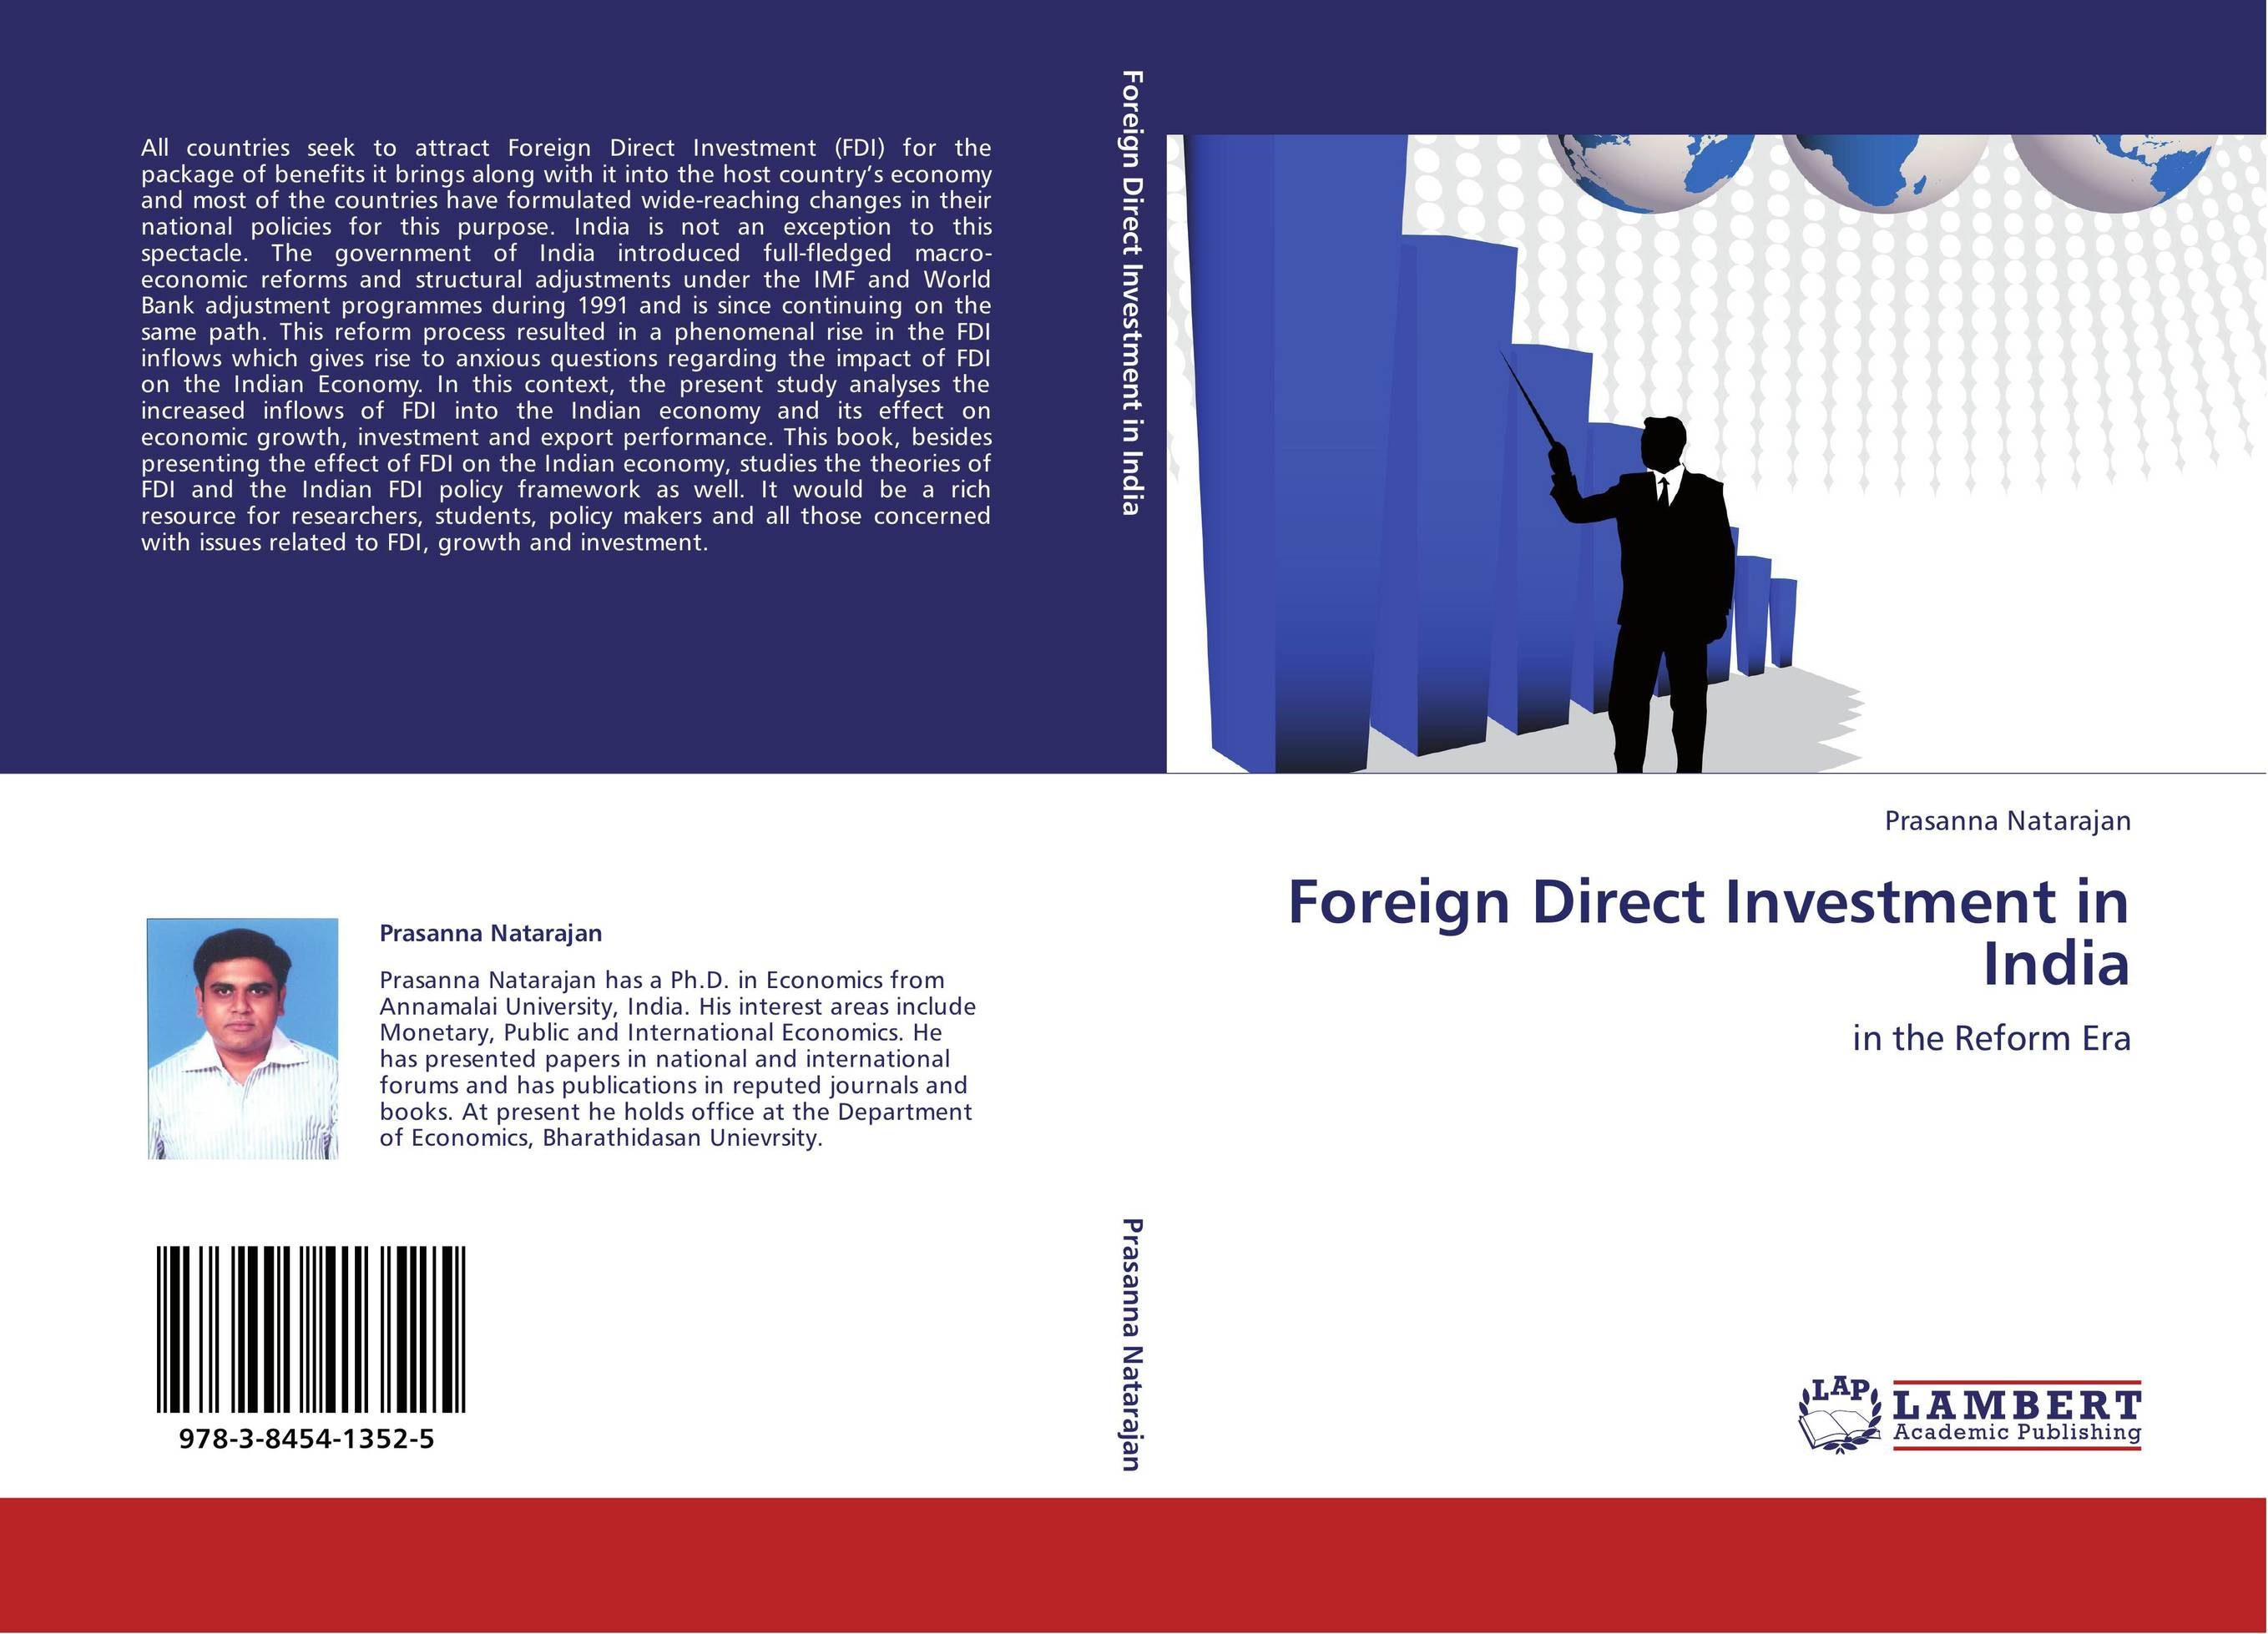 which theory of foreign direct investment best explains the sudden increase in interest by foreign a Direct investment implies full or partial control of the enterprise and, usually, physical presence by foreign firms or individuals in the host country fe curve this curve shows all combinations of interest rate and income which result in a zero balance in the country's overall international payments position (its official settlements balance is zero.